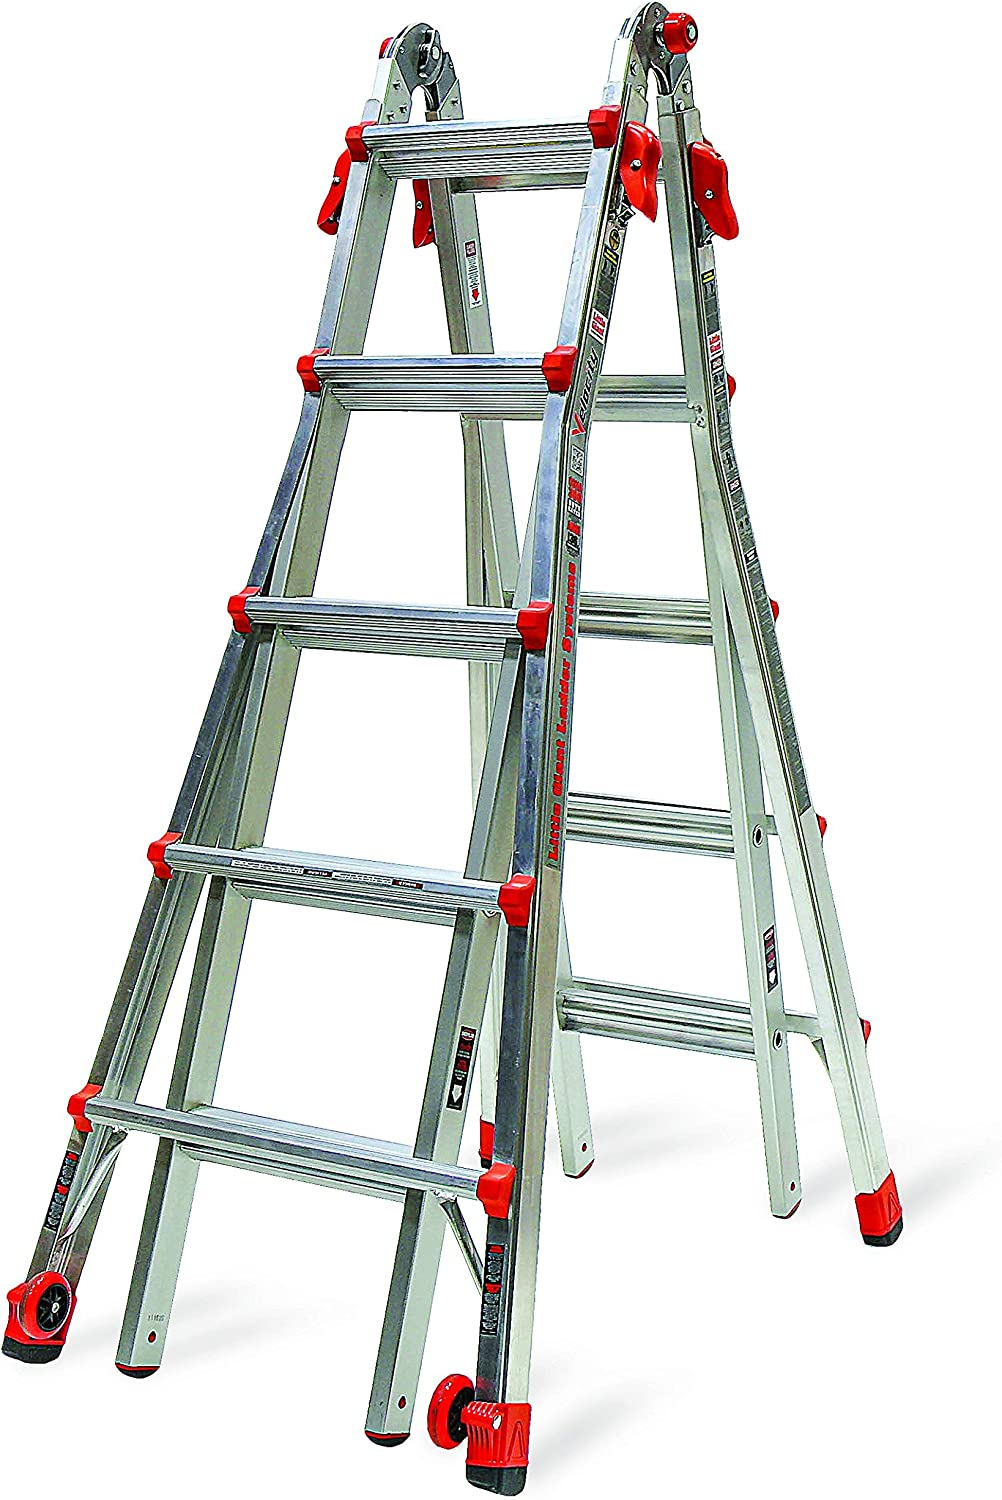 Little Giant 22-Foot Velocity Multi-Use Ladder, 300-Pound Duty Rating, 15422-001 (Renewed)